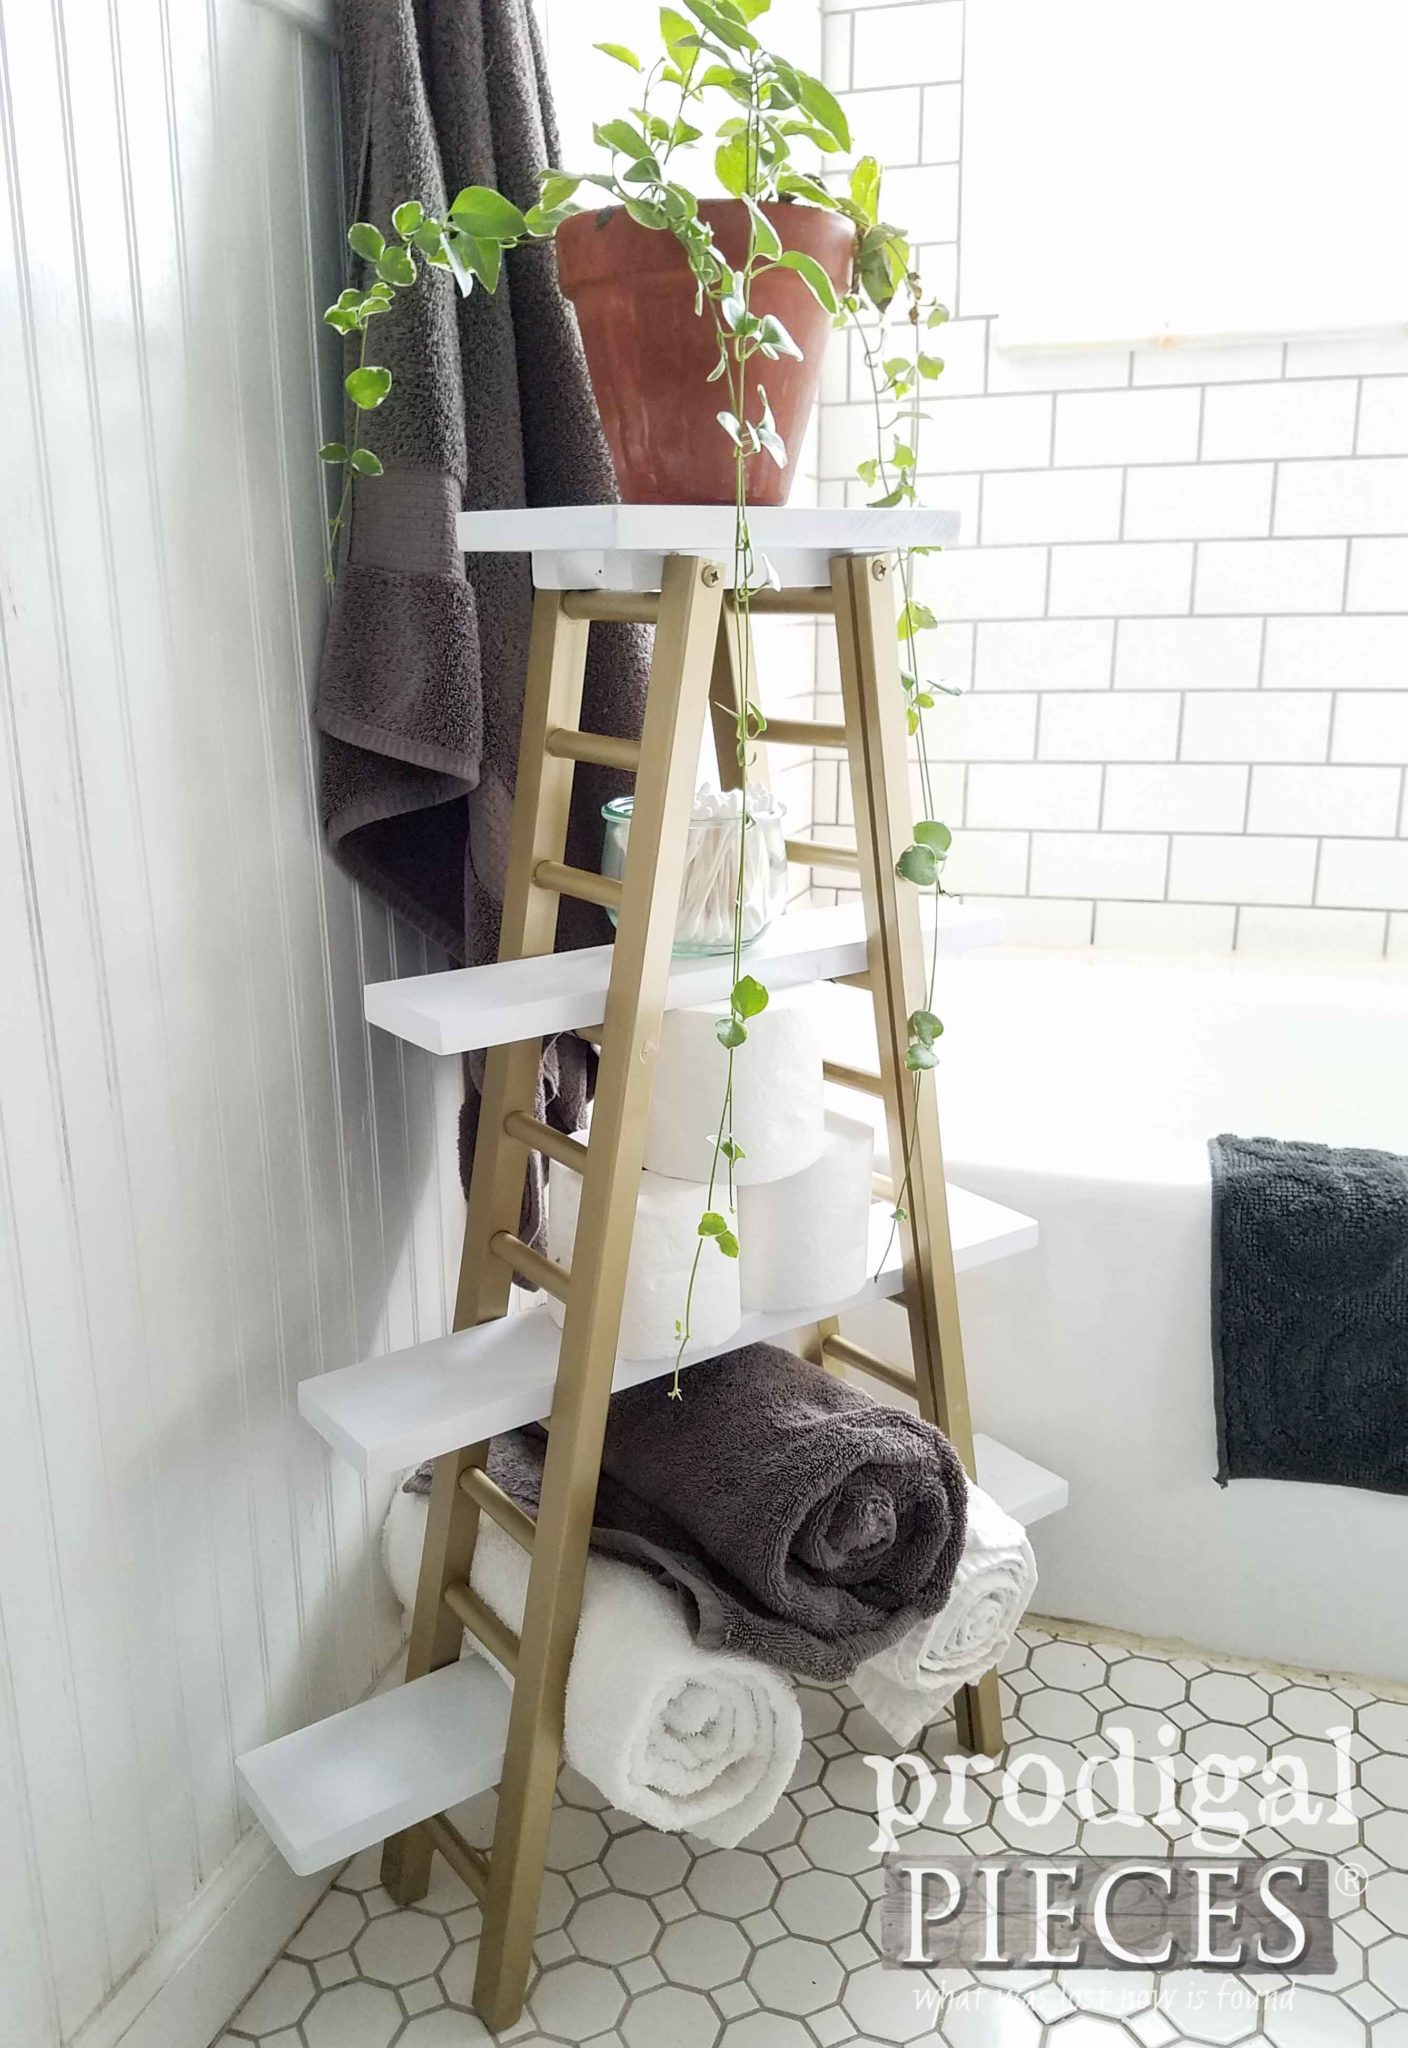 Boho Style Storage for Bathroom and More by Prodigal Pieces | prodigalpieces.com